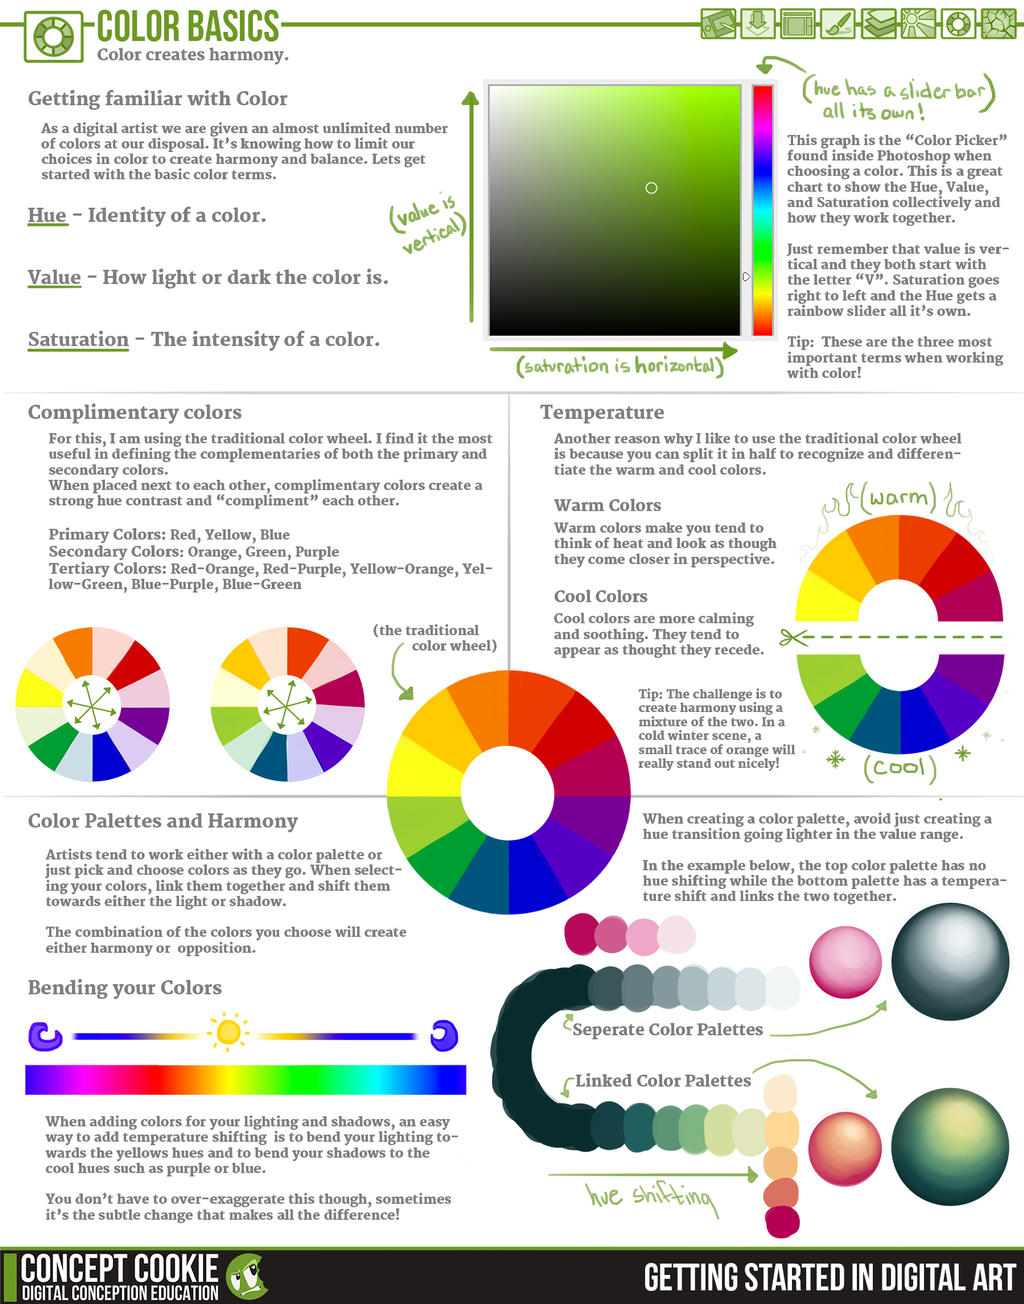 Getting Started: Color Basics by ConceptCookie